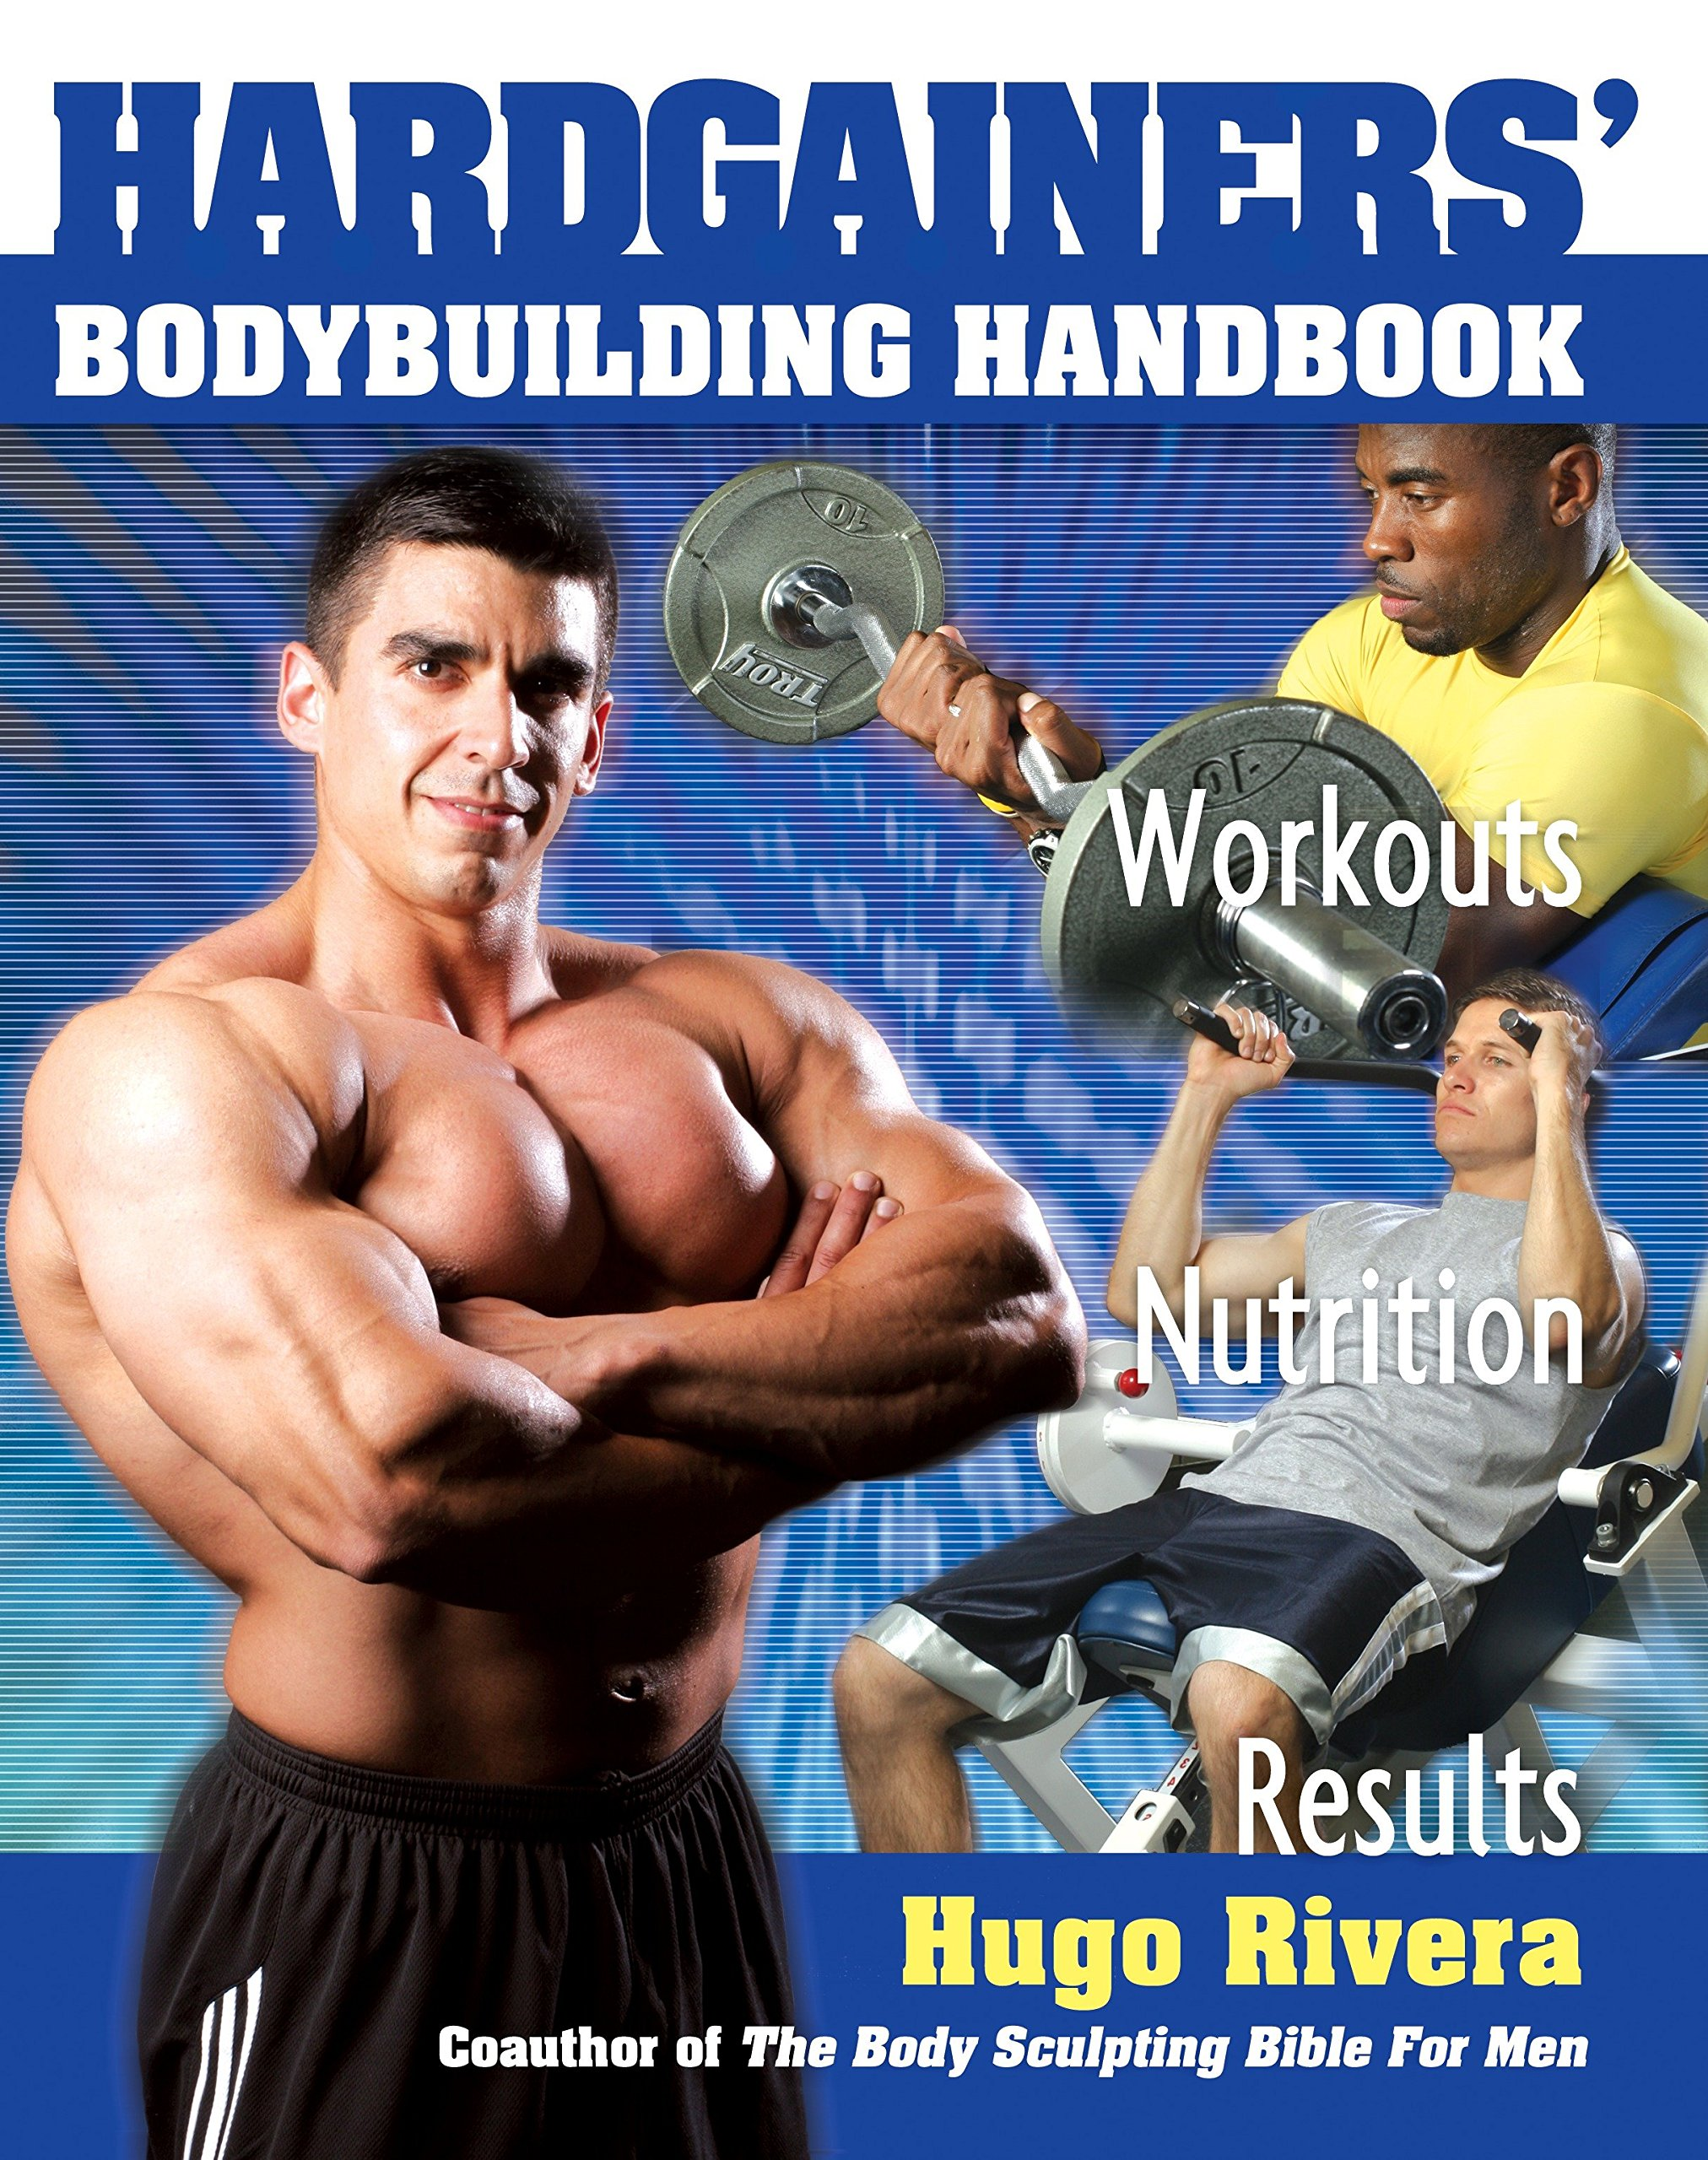 The Hardgainer's Body Building Handbook: Workouts, Nutrition, and Results:  Hugo Rivera: 9781578261864: Amazon.com: Books